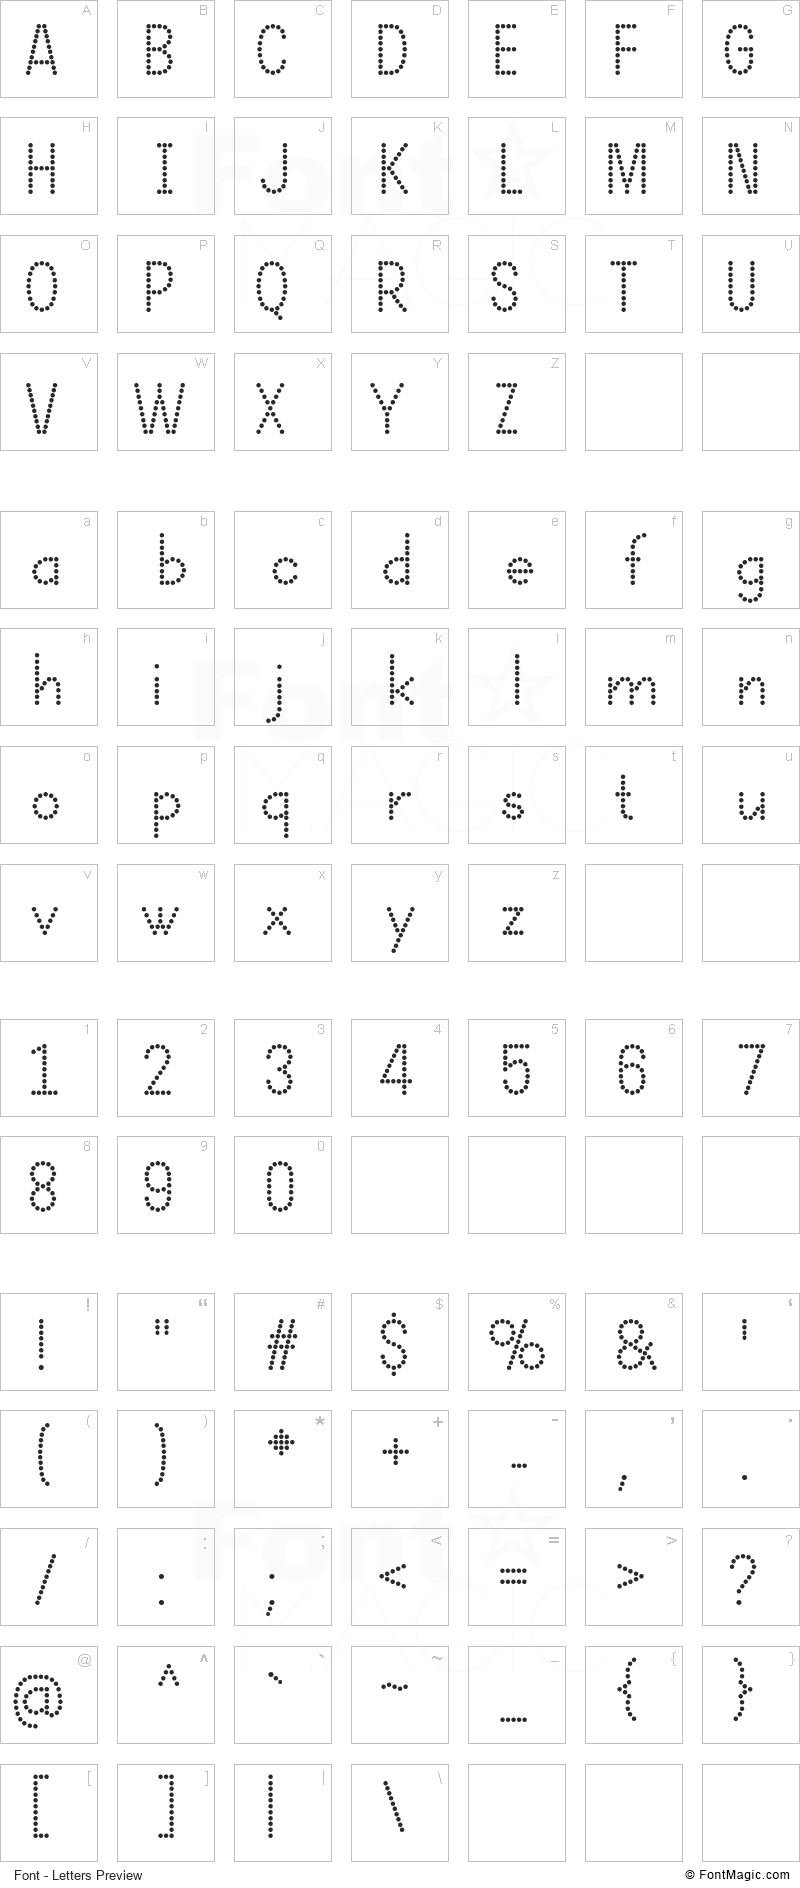 Dotcirful Font - All Latters Preview Chart